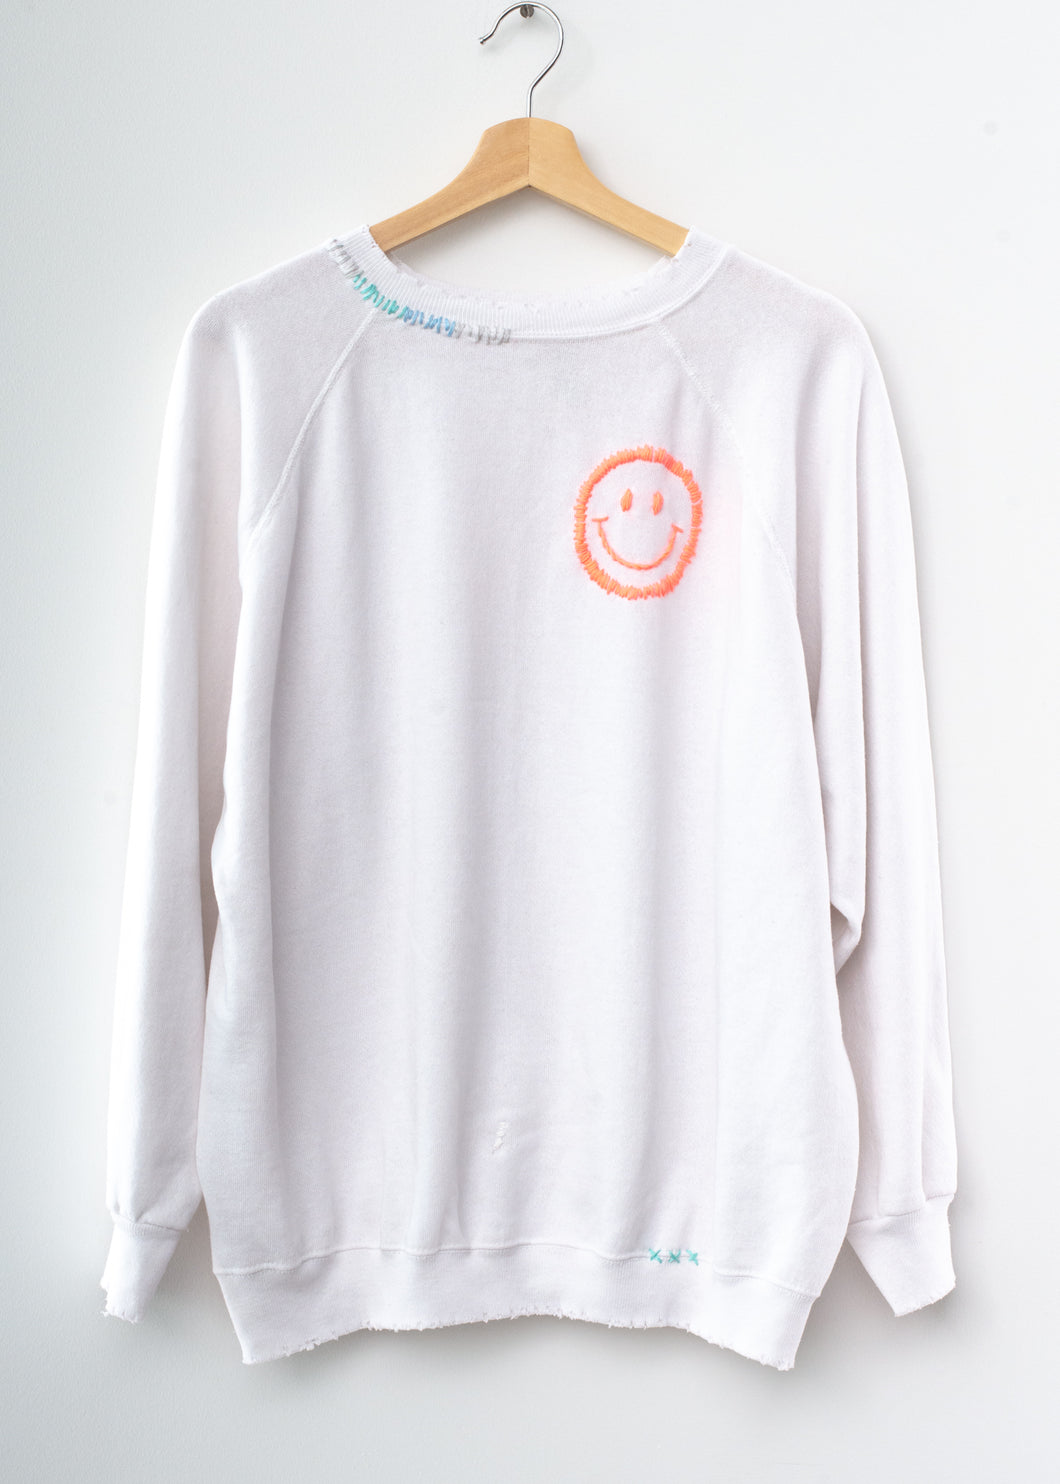 Happy Face Sweatshirt - True White